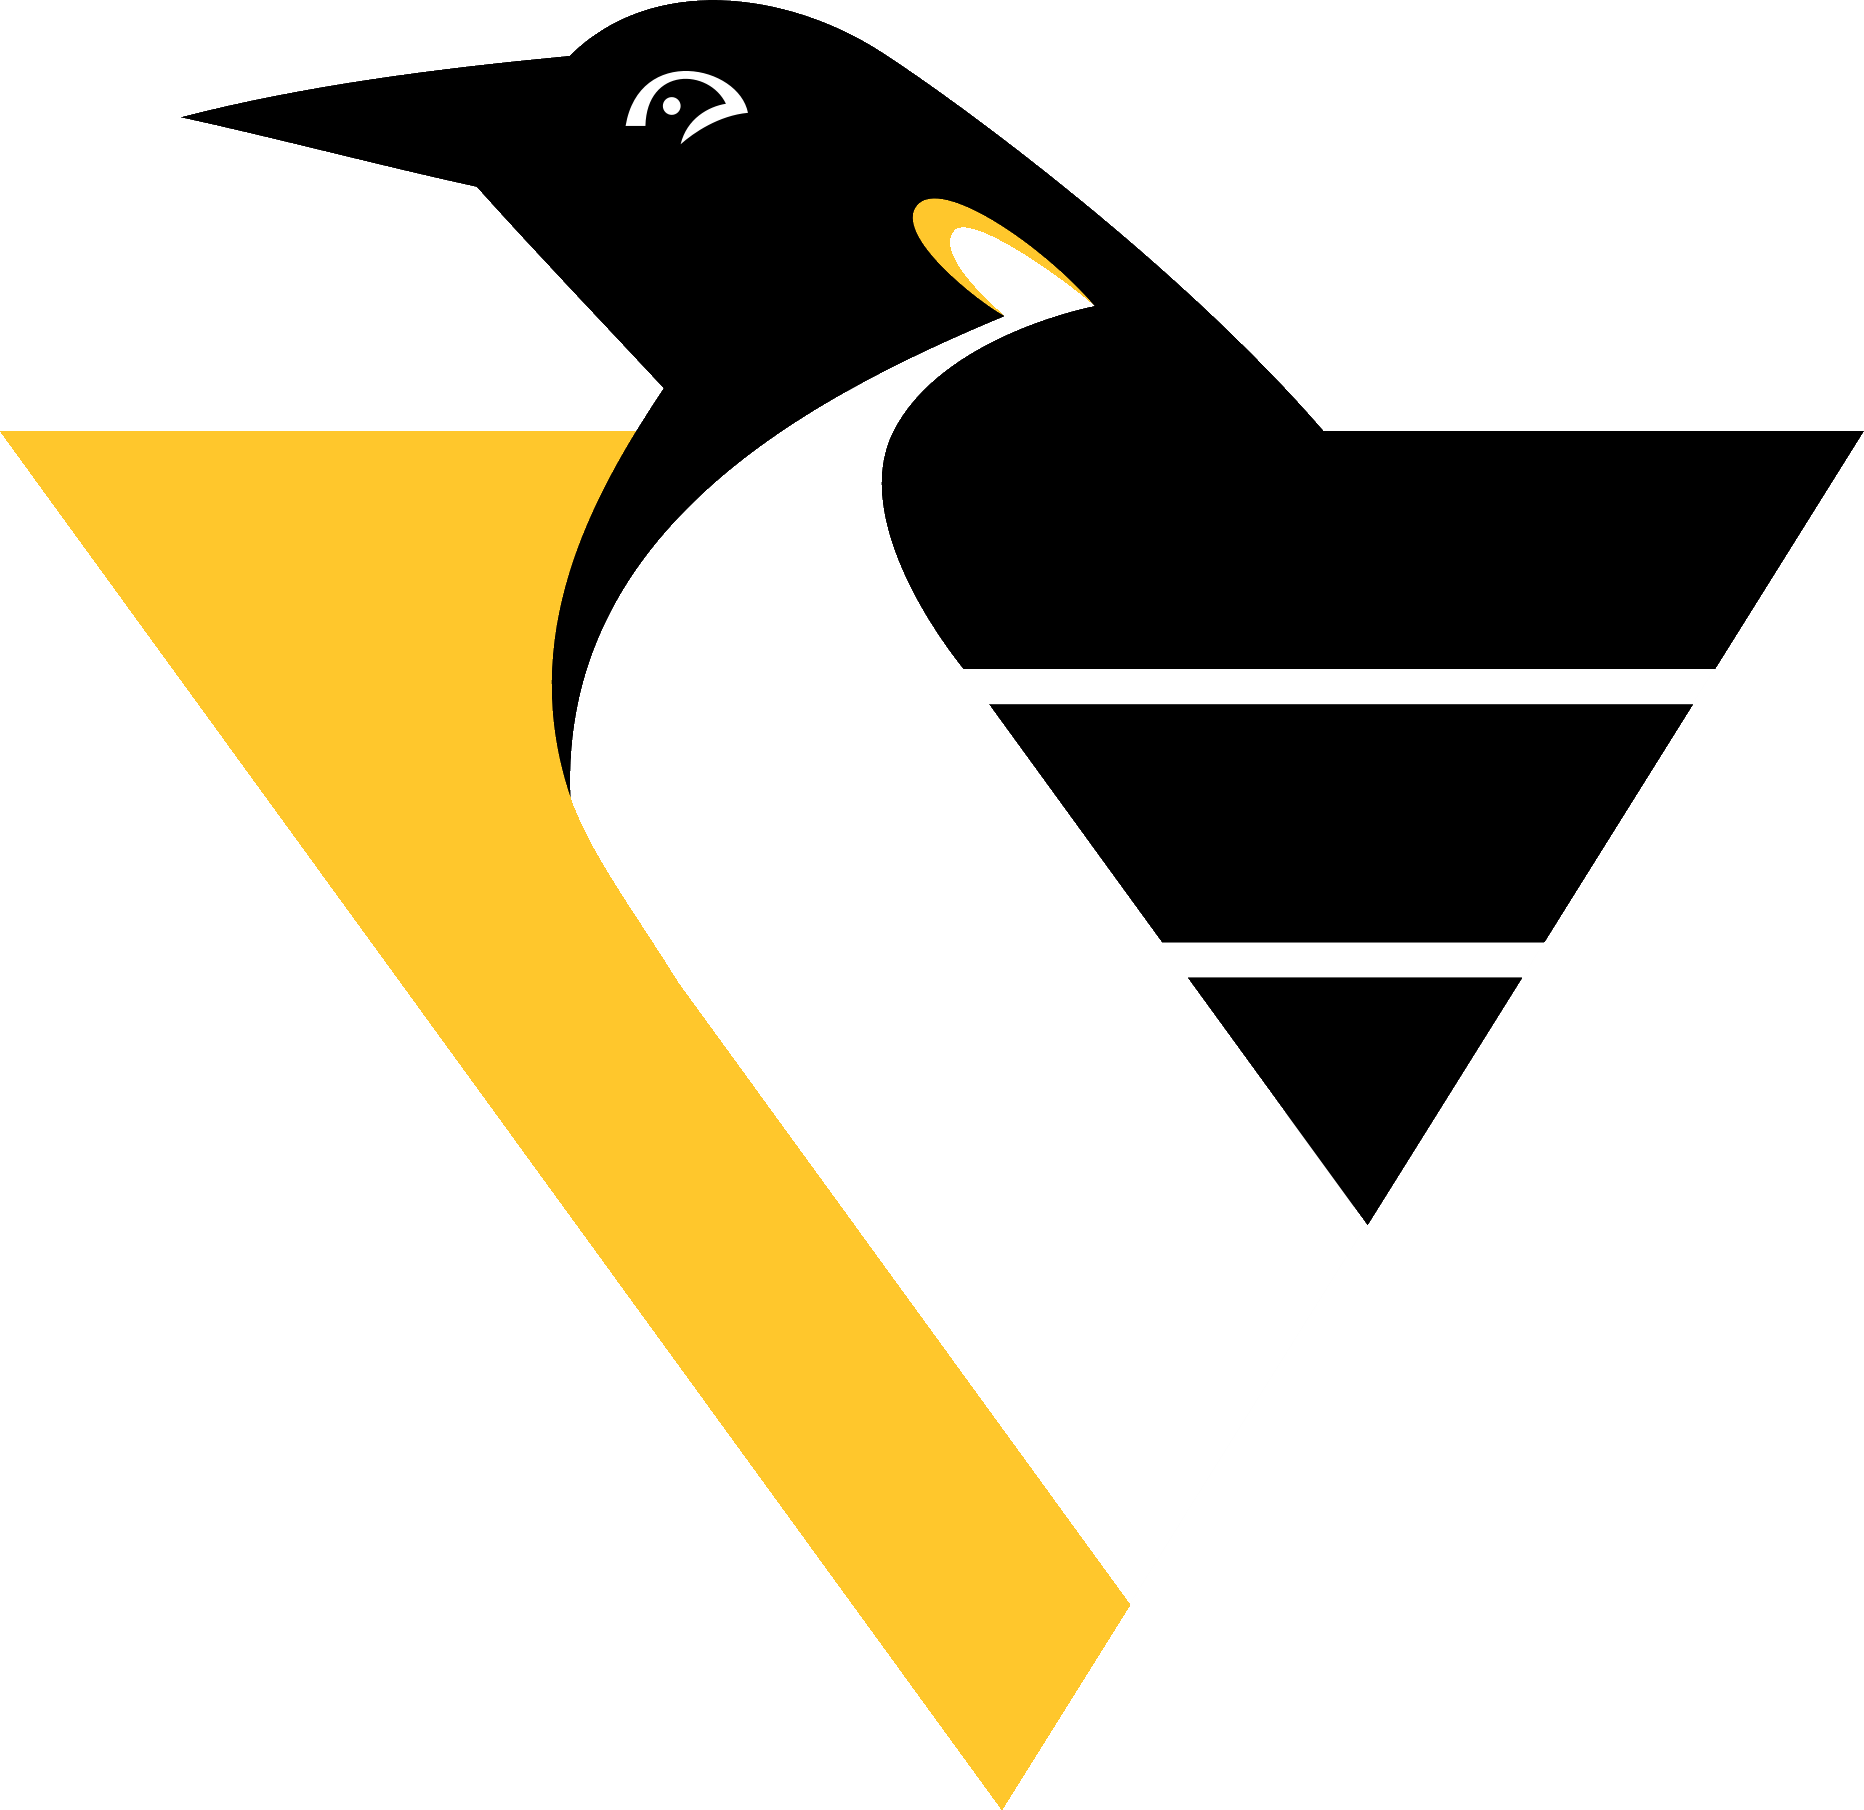 Pittsburgh Penguins - Logopedia, the logo and branding site